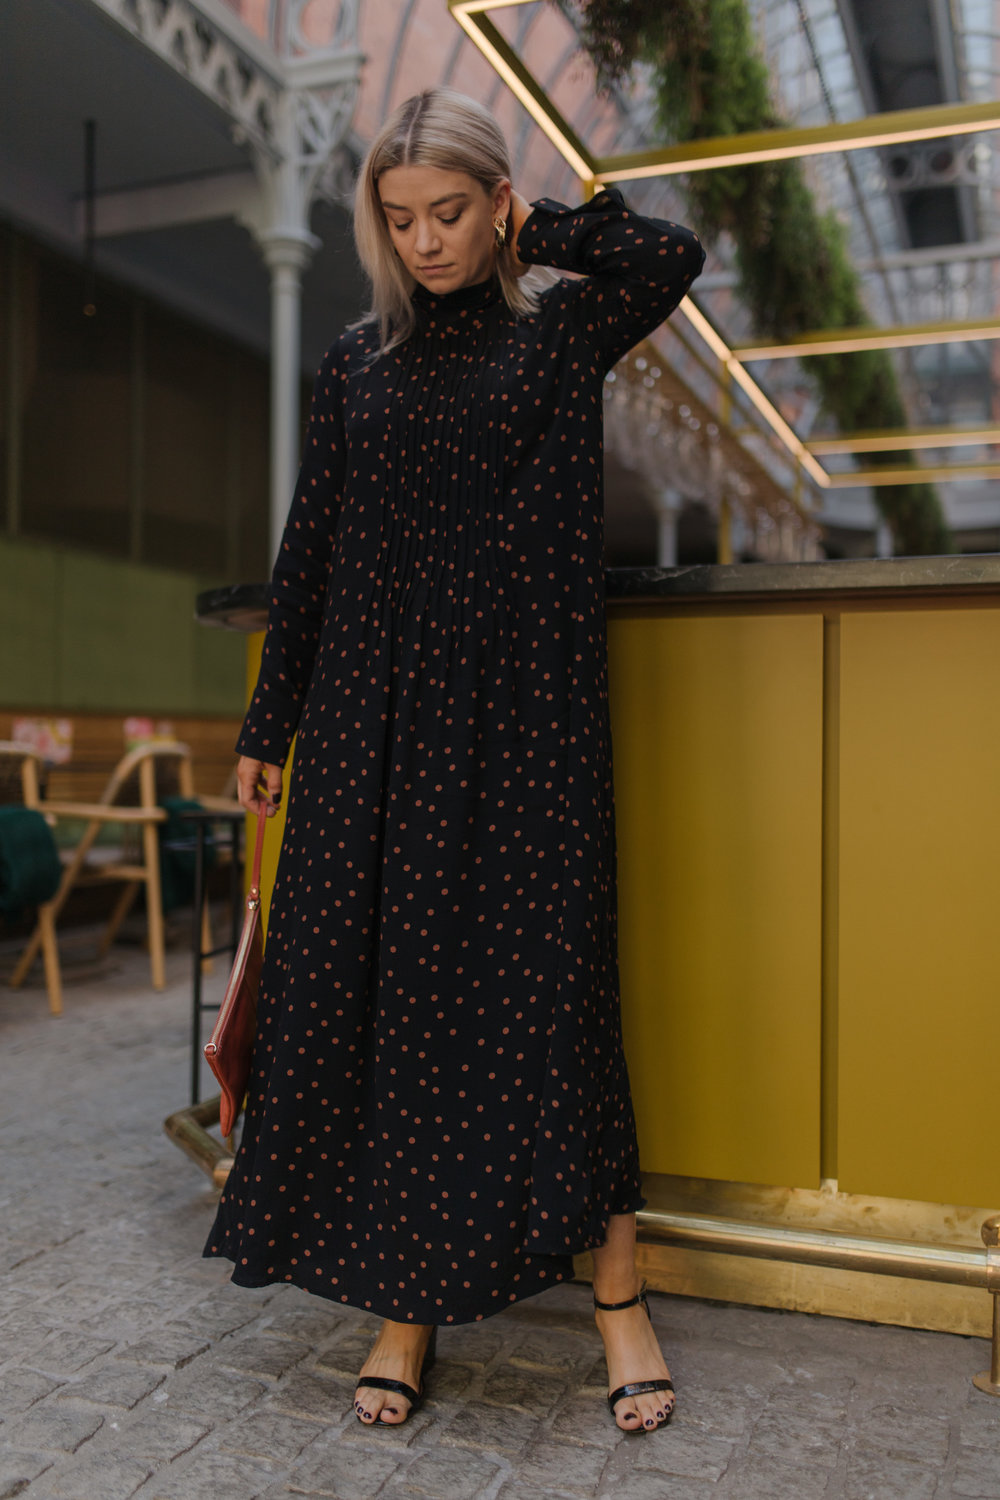 topshop maxi dress, polka dot dress, topshop black sandals, gold hoop earrings, joey taylor, northern magpie, headbands, clutch bags 2